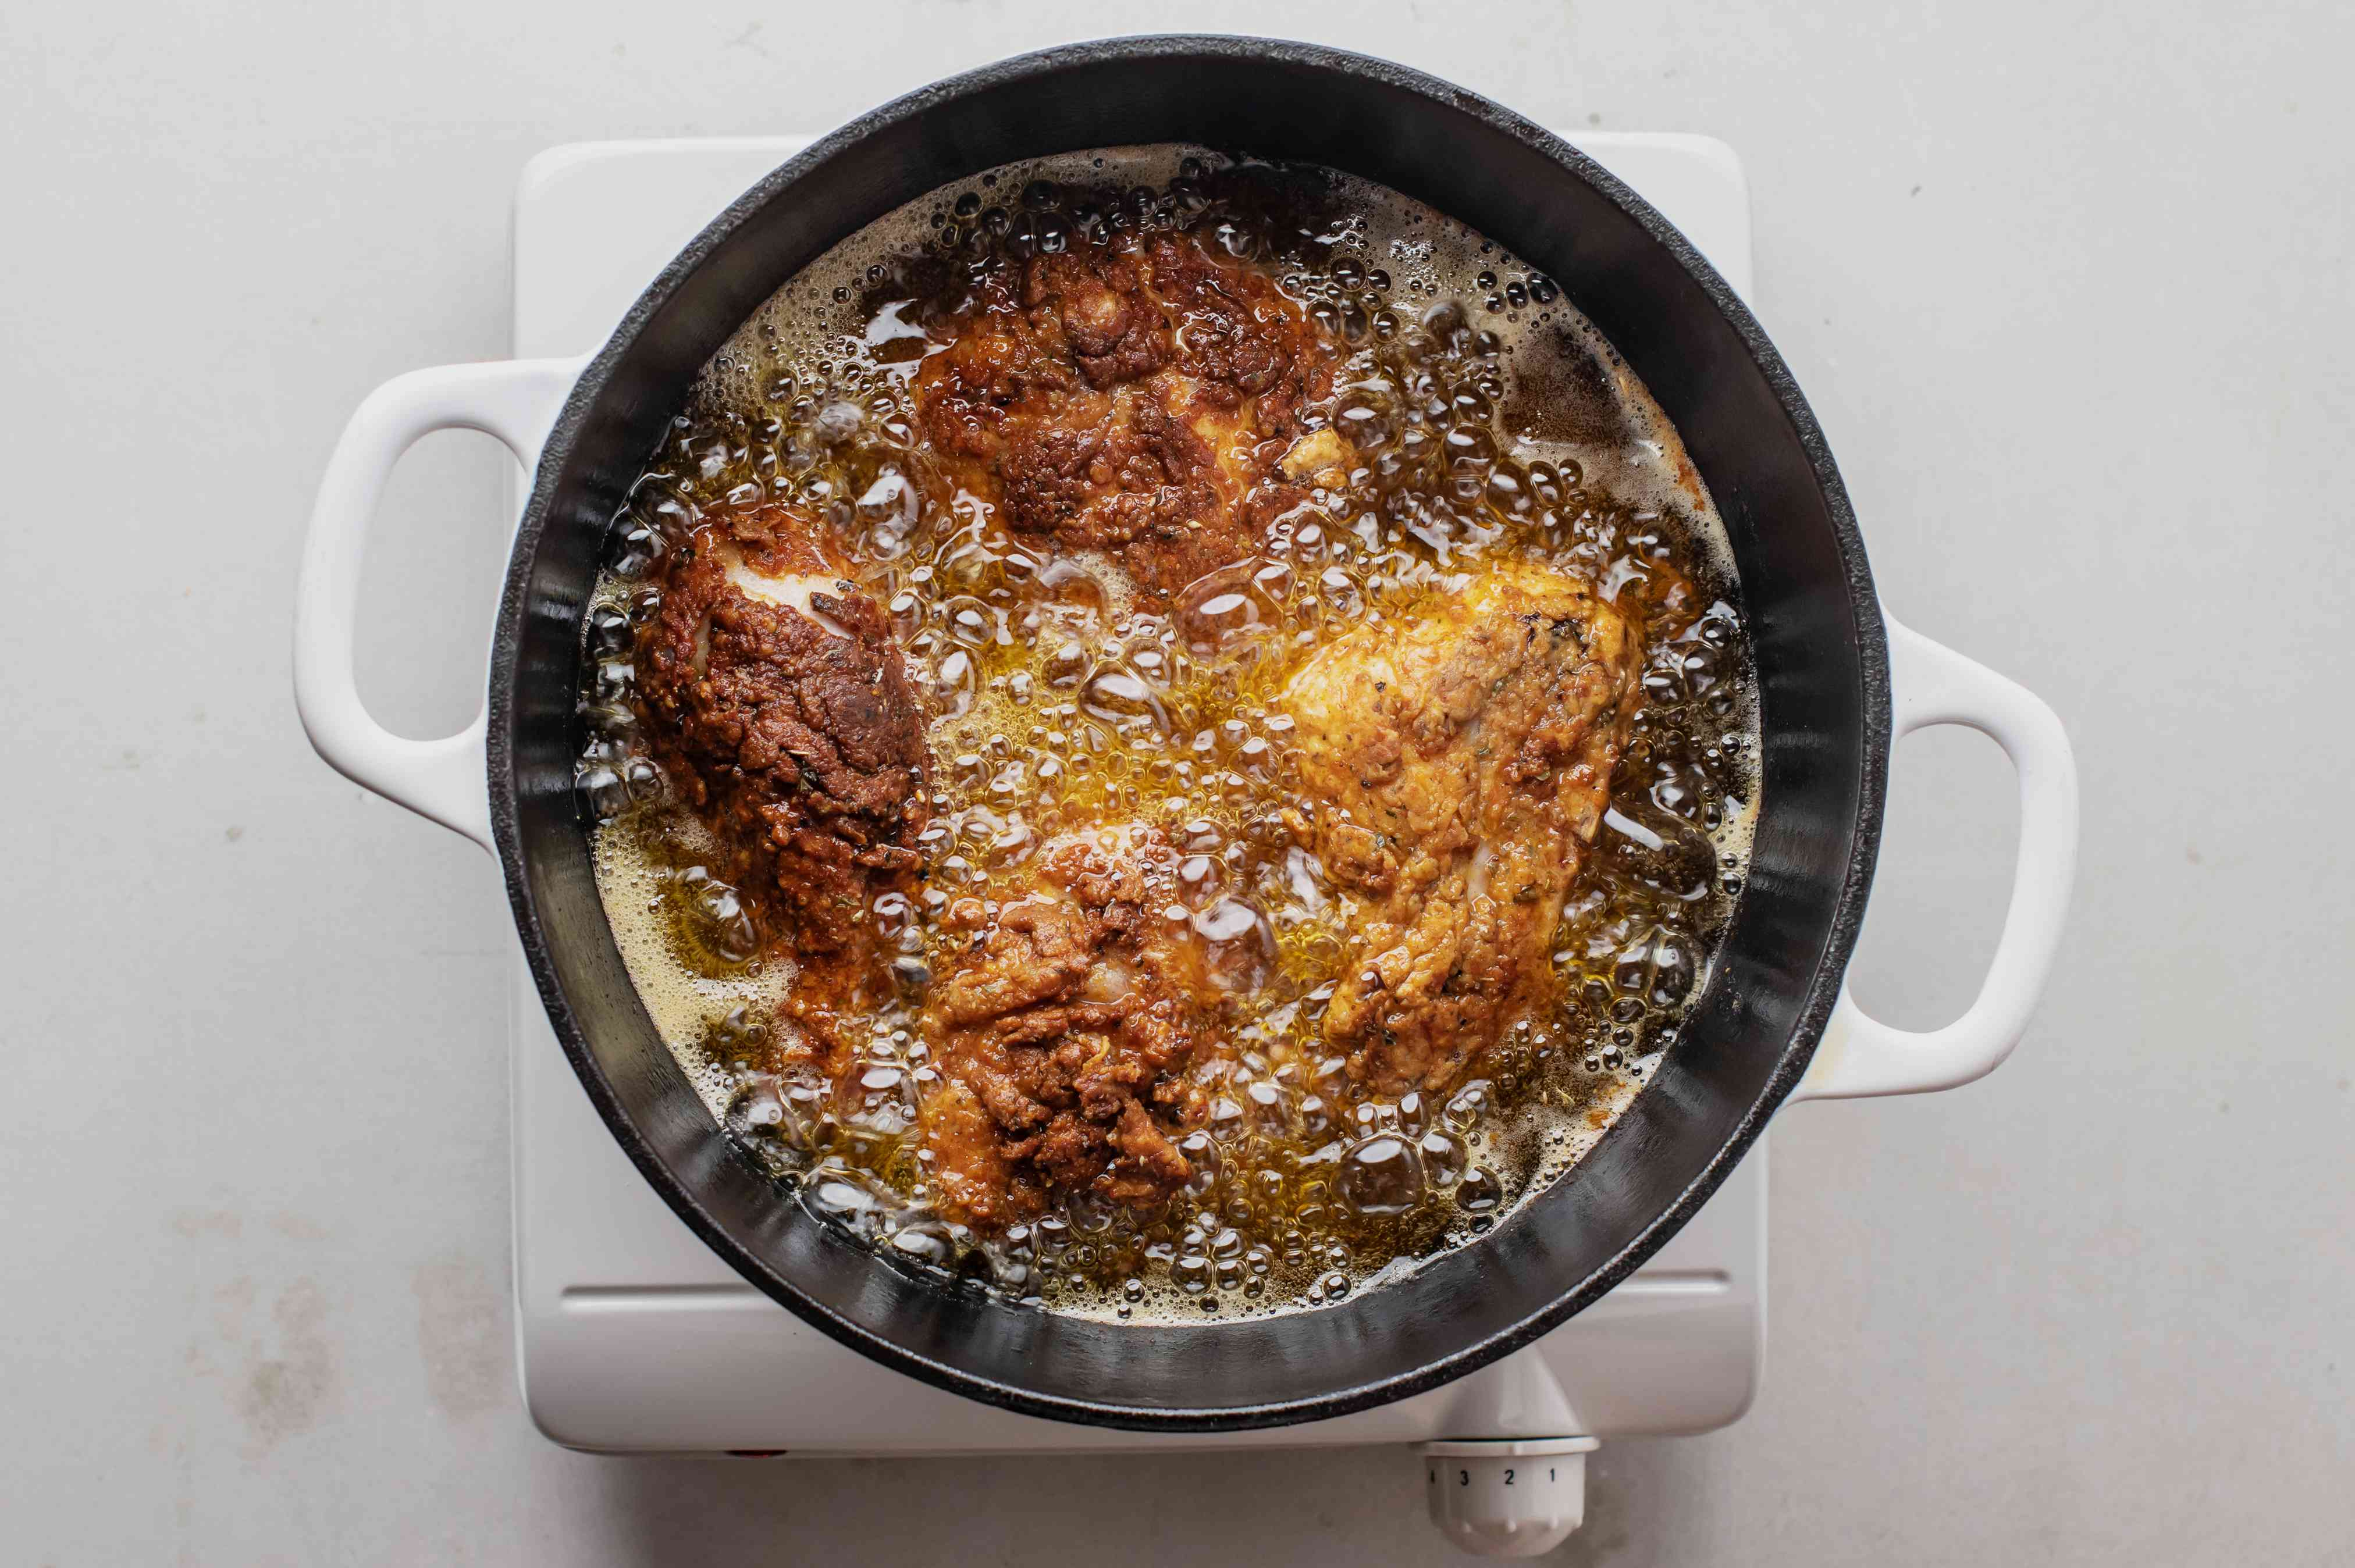 Allow chicken to fry